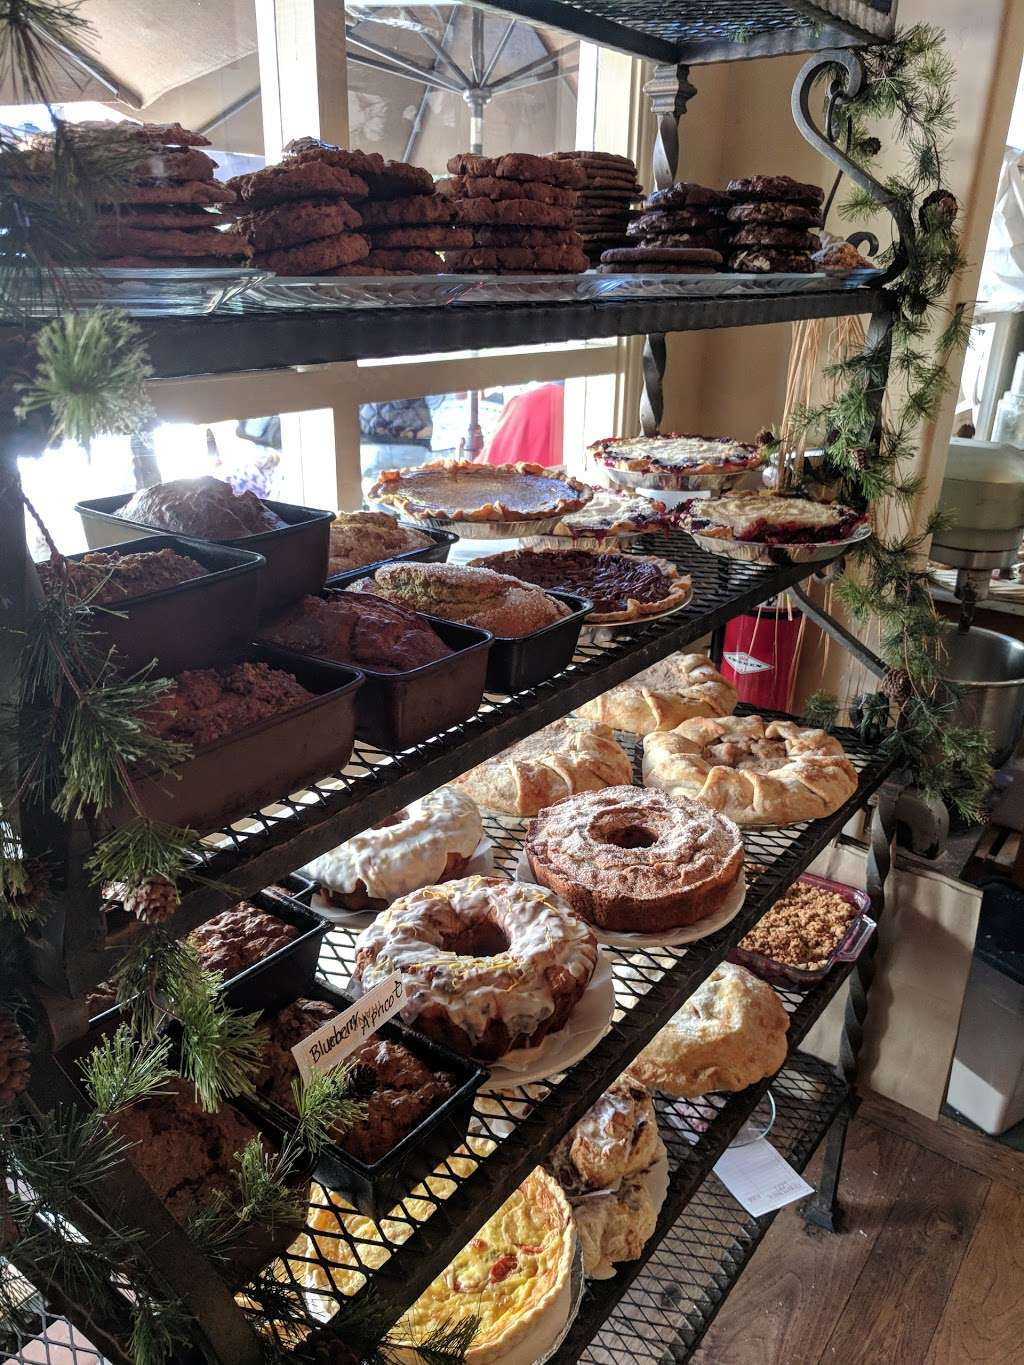 Thyme In the Ranch - bakery  | Photo 6 of 10 | Address: 16905 Avenida De Acacias, Rancho Santa Fe, CA 92091, USA | Phone: (858) 759-0747